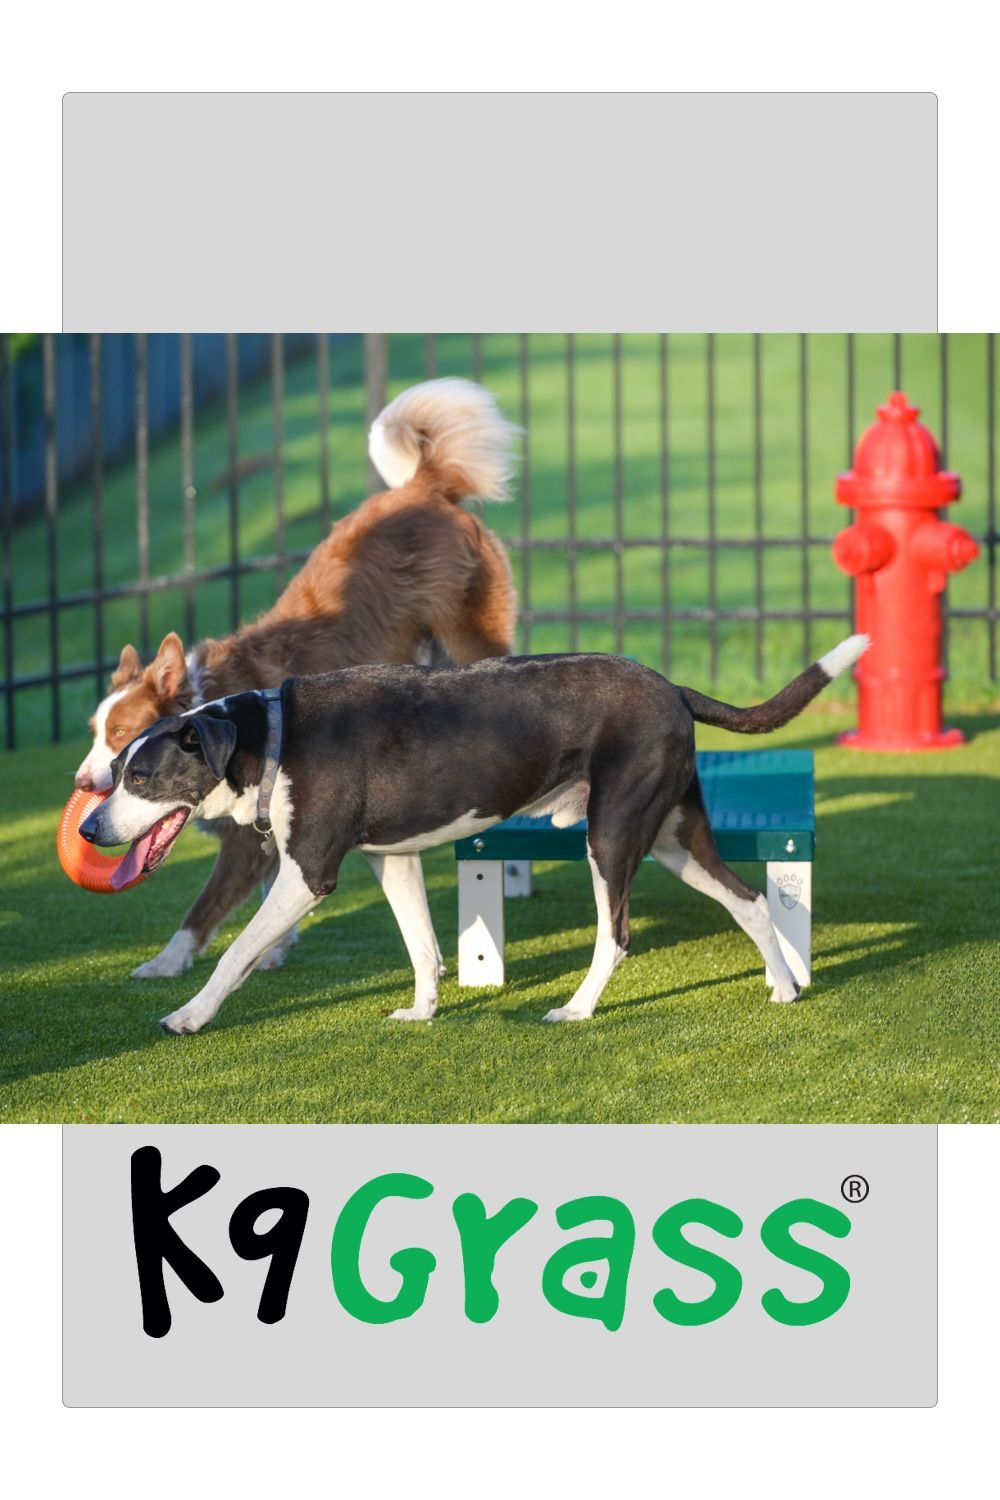 Artificial Grass Designed for Dogs in 2020 Dogs, K9